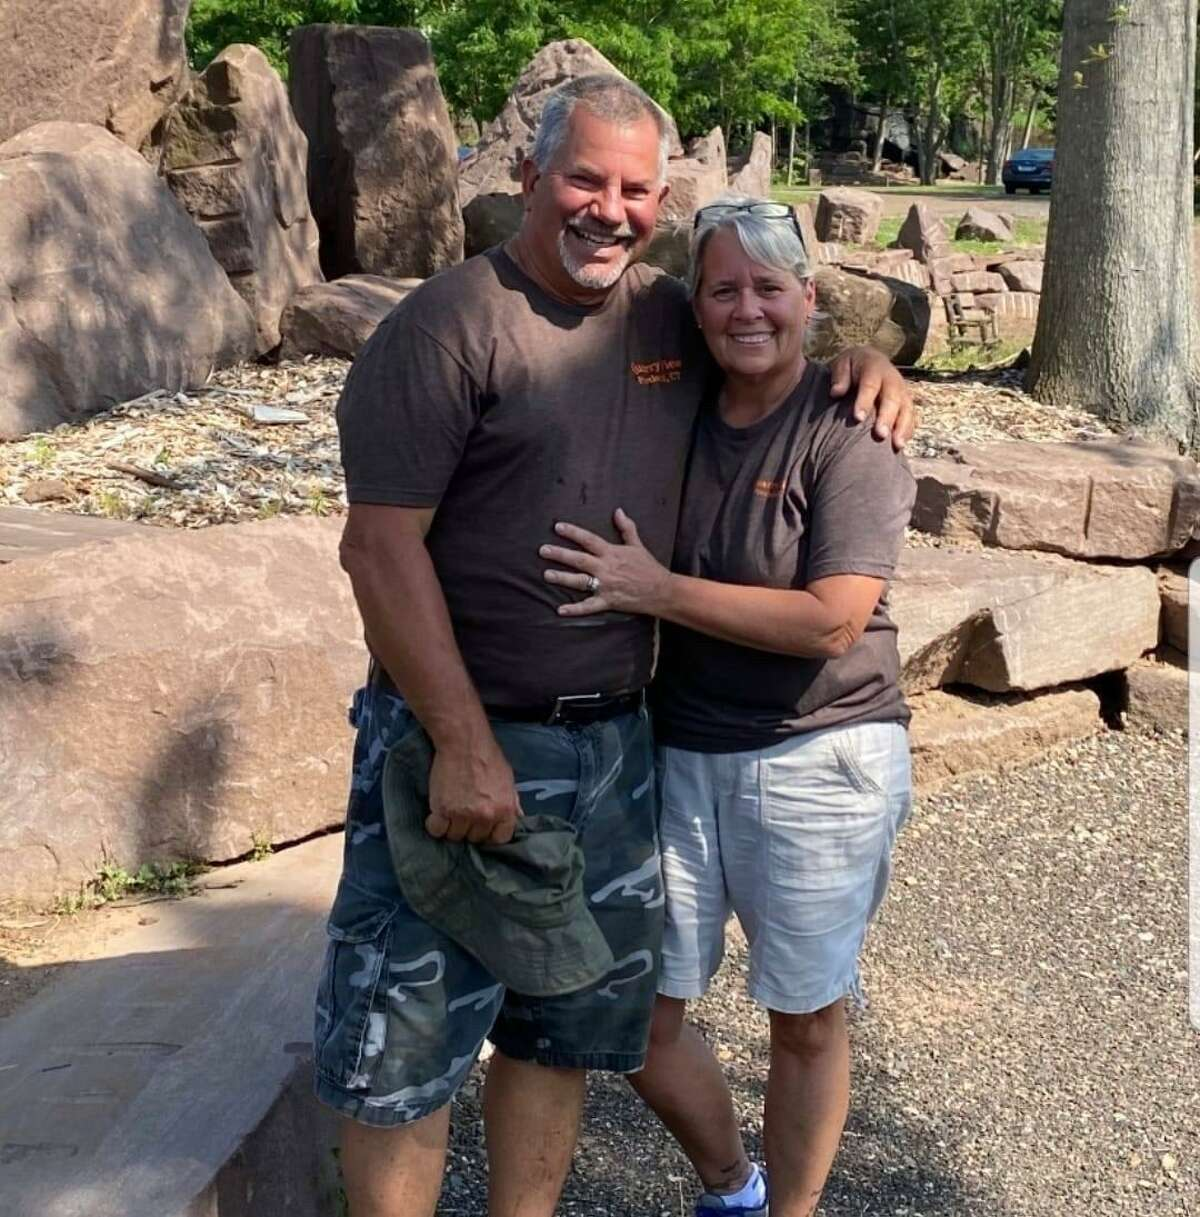 Dean Soucy and Darlene Rice bought the property two years ago, and have spent that time clearing out vine and making the land presentable while still maintaining its roots.